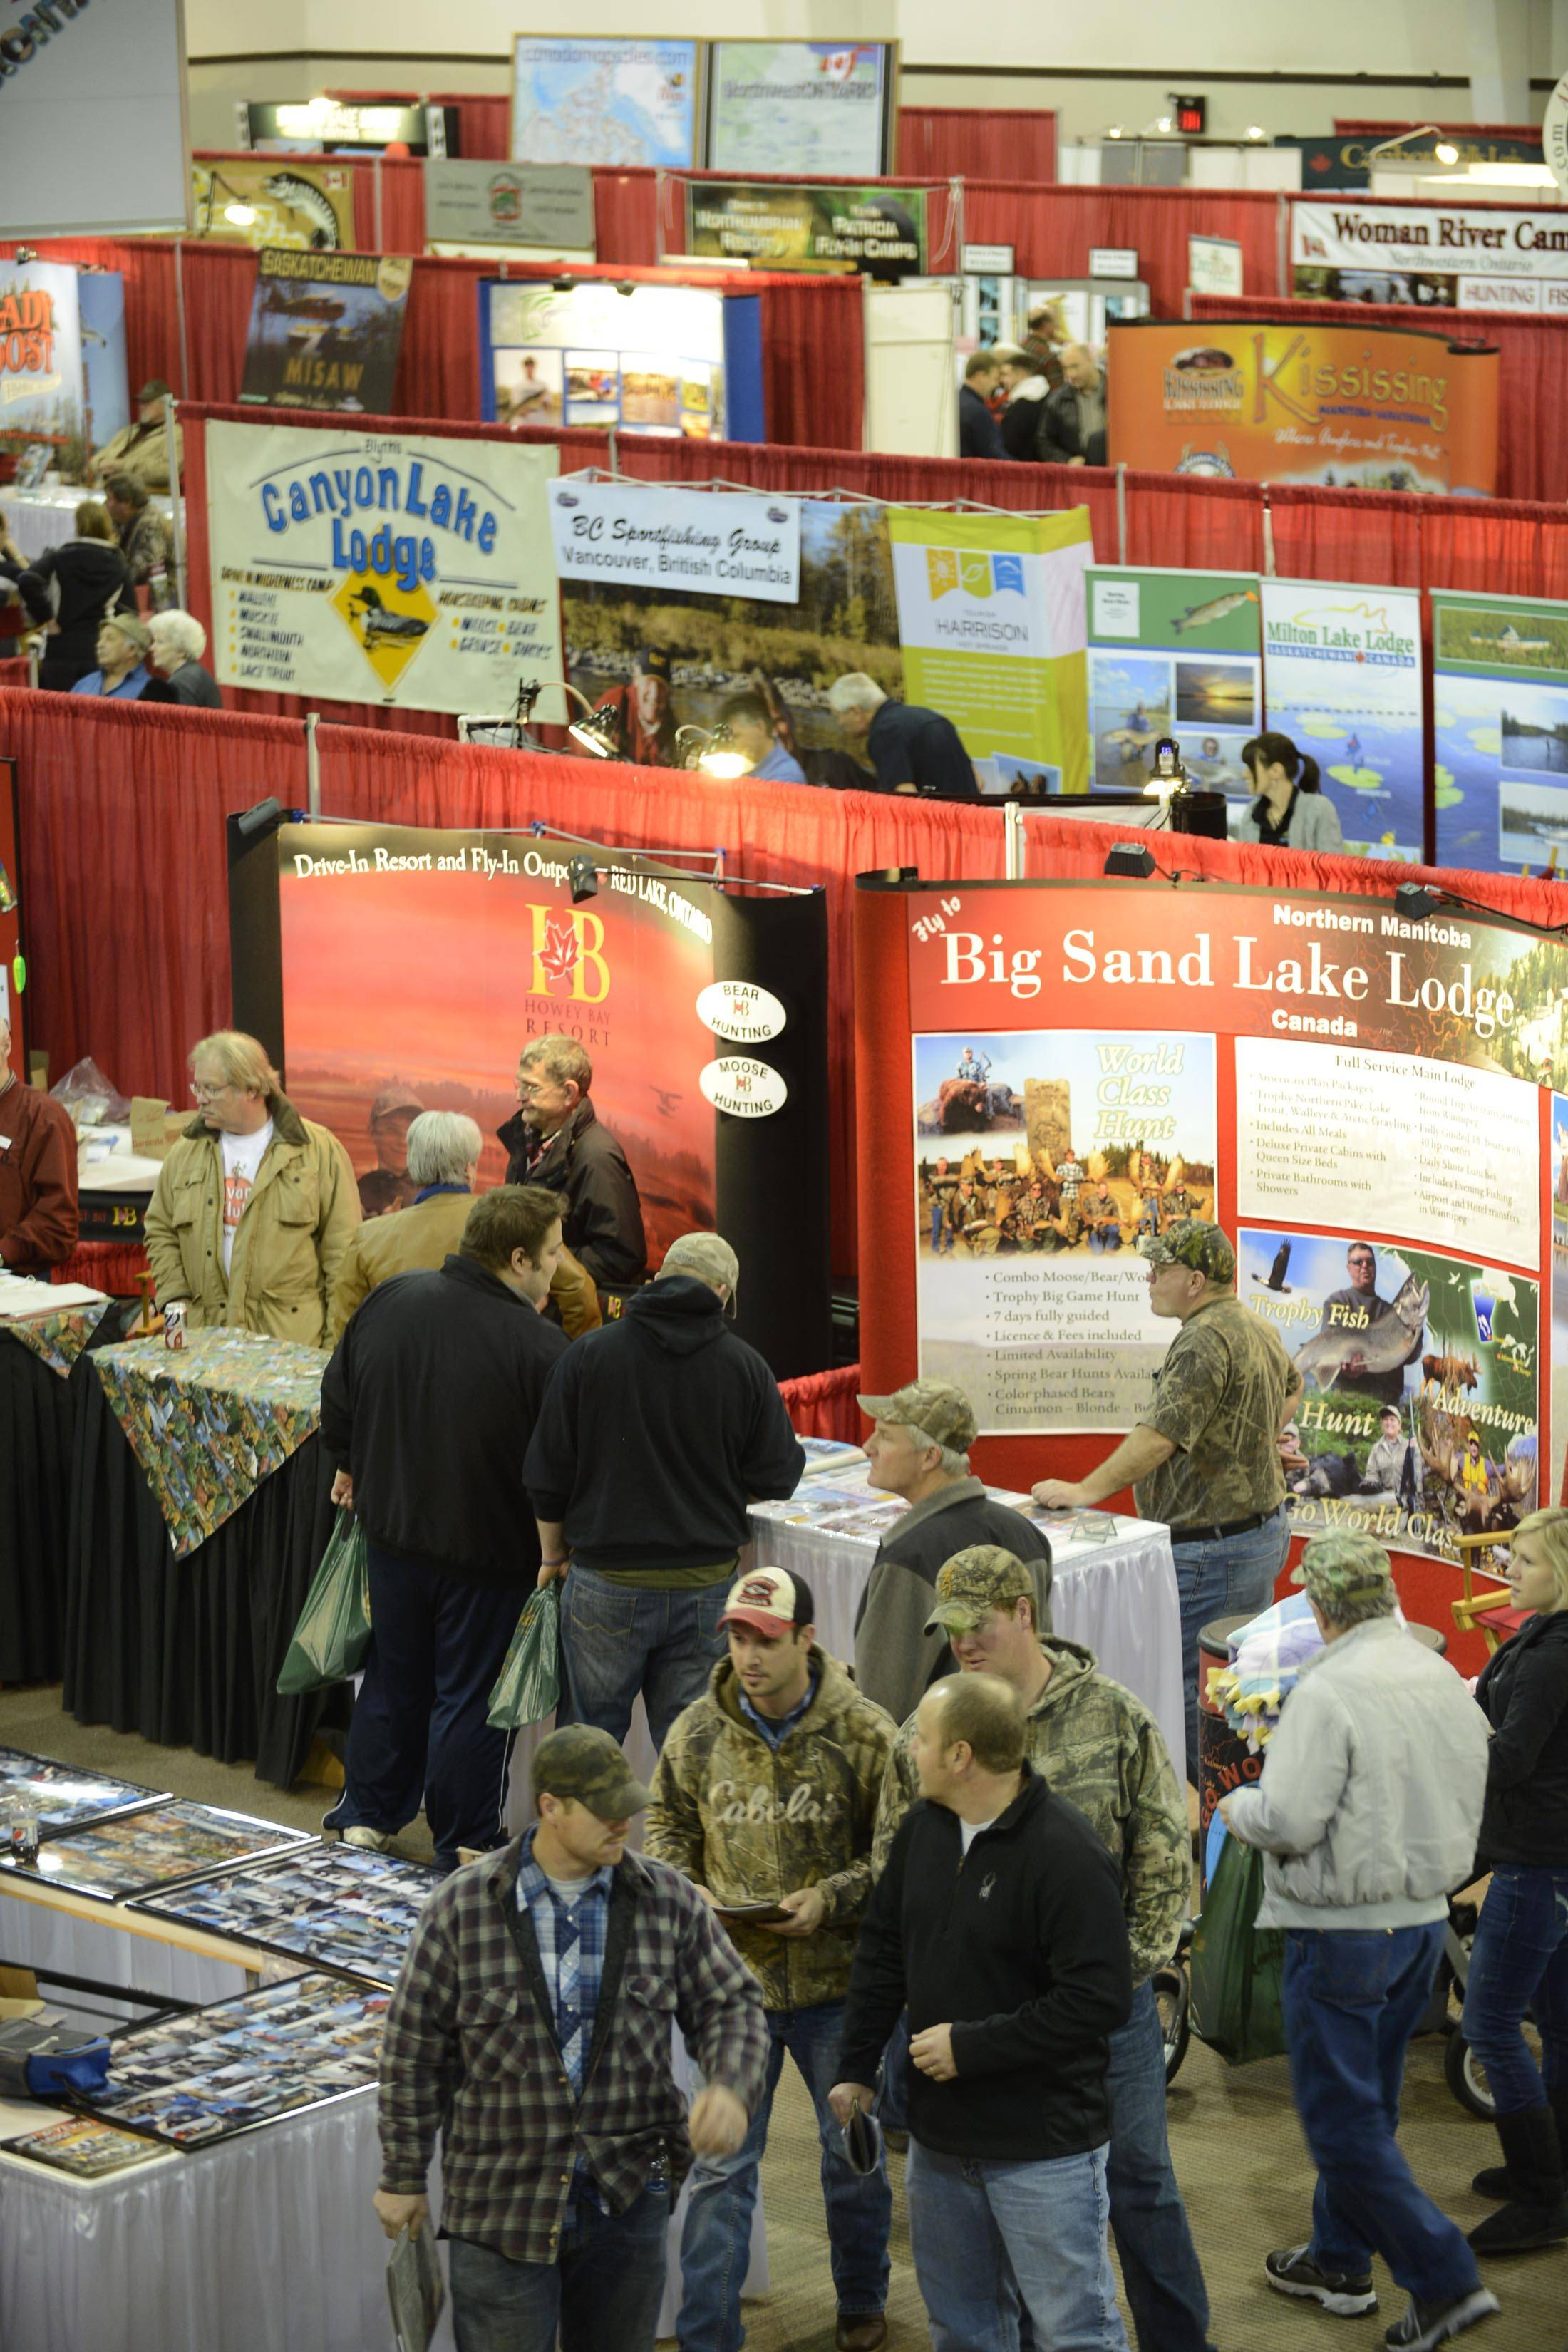 Sportsmen and women wander through a previous All-Canada Show at the Pheasant Run Resort in St. Charles. At this year's show about 150 Canadian lodges and resorts are expected to exhibit.